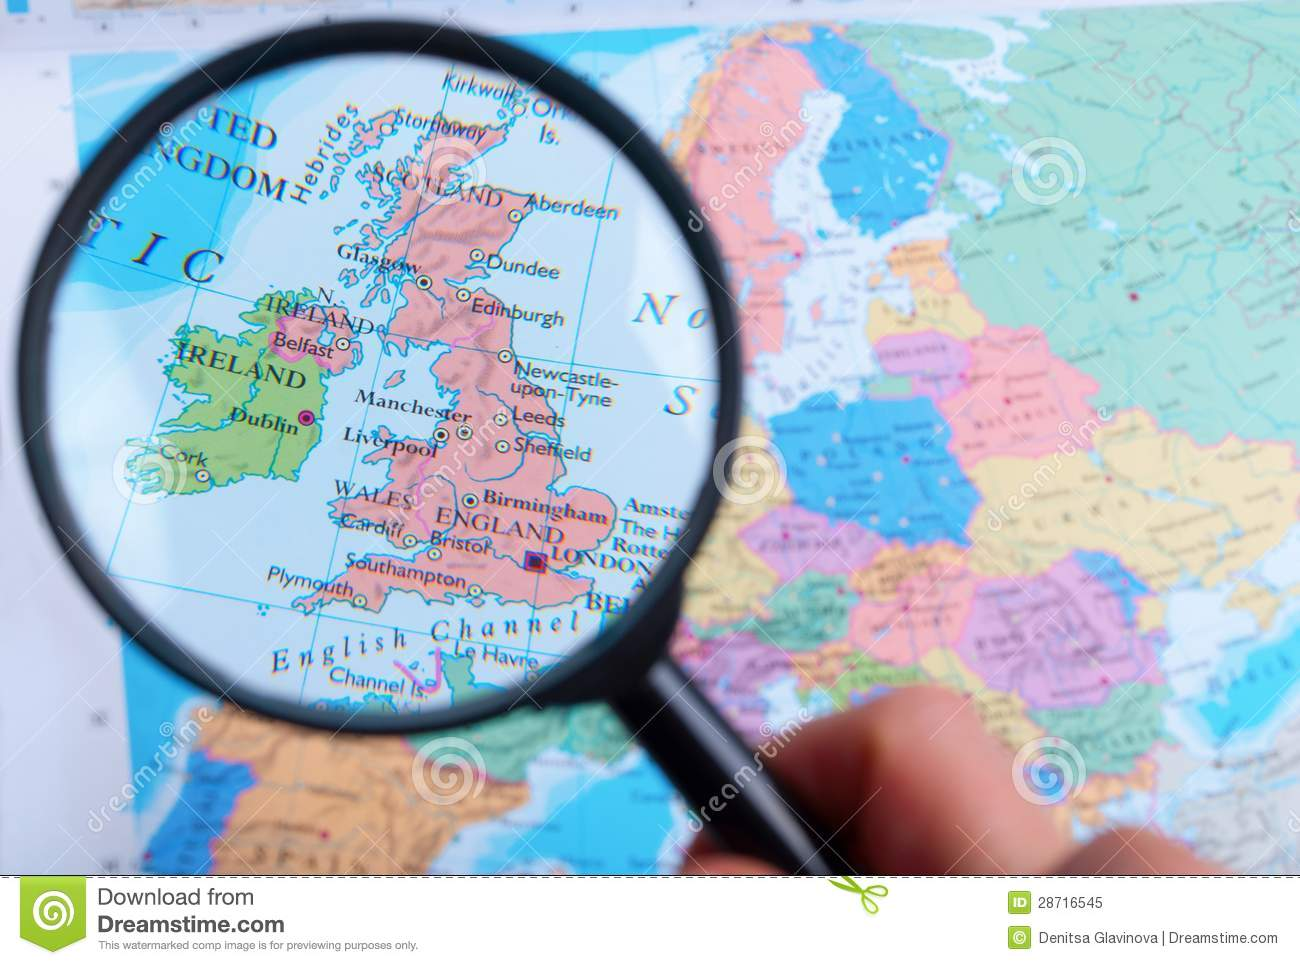 Map Of England Zoom.Map And Zoom Lens England Stock Image Image Of Background 28716545